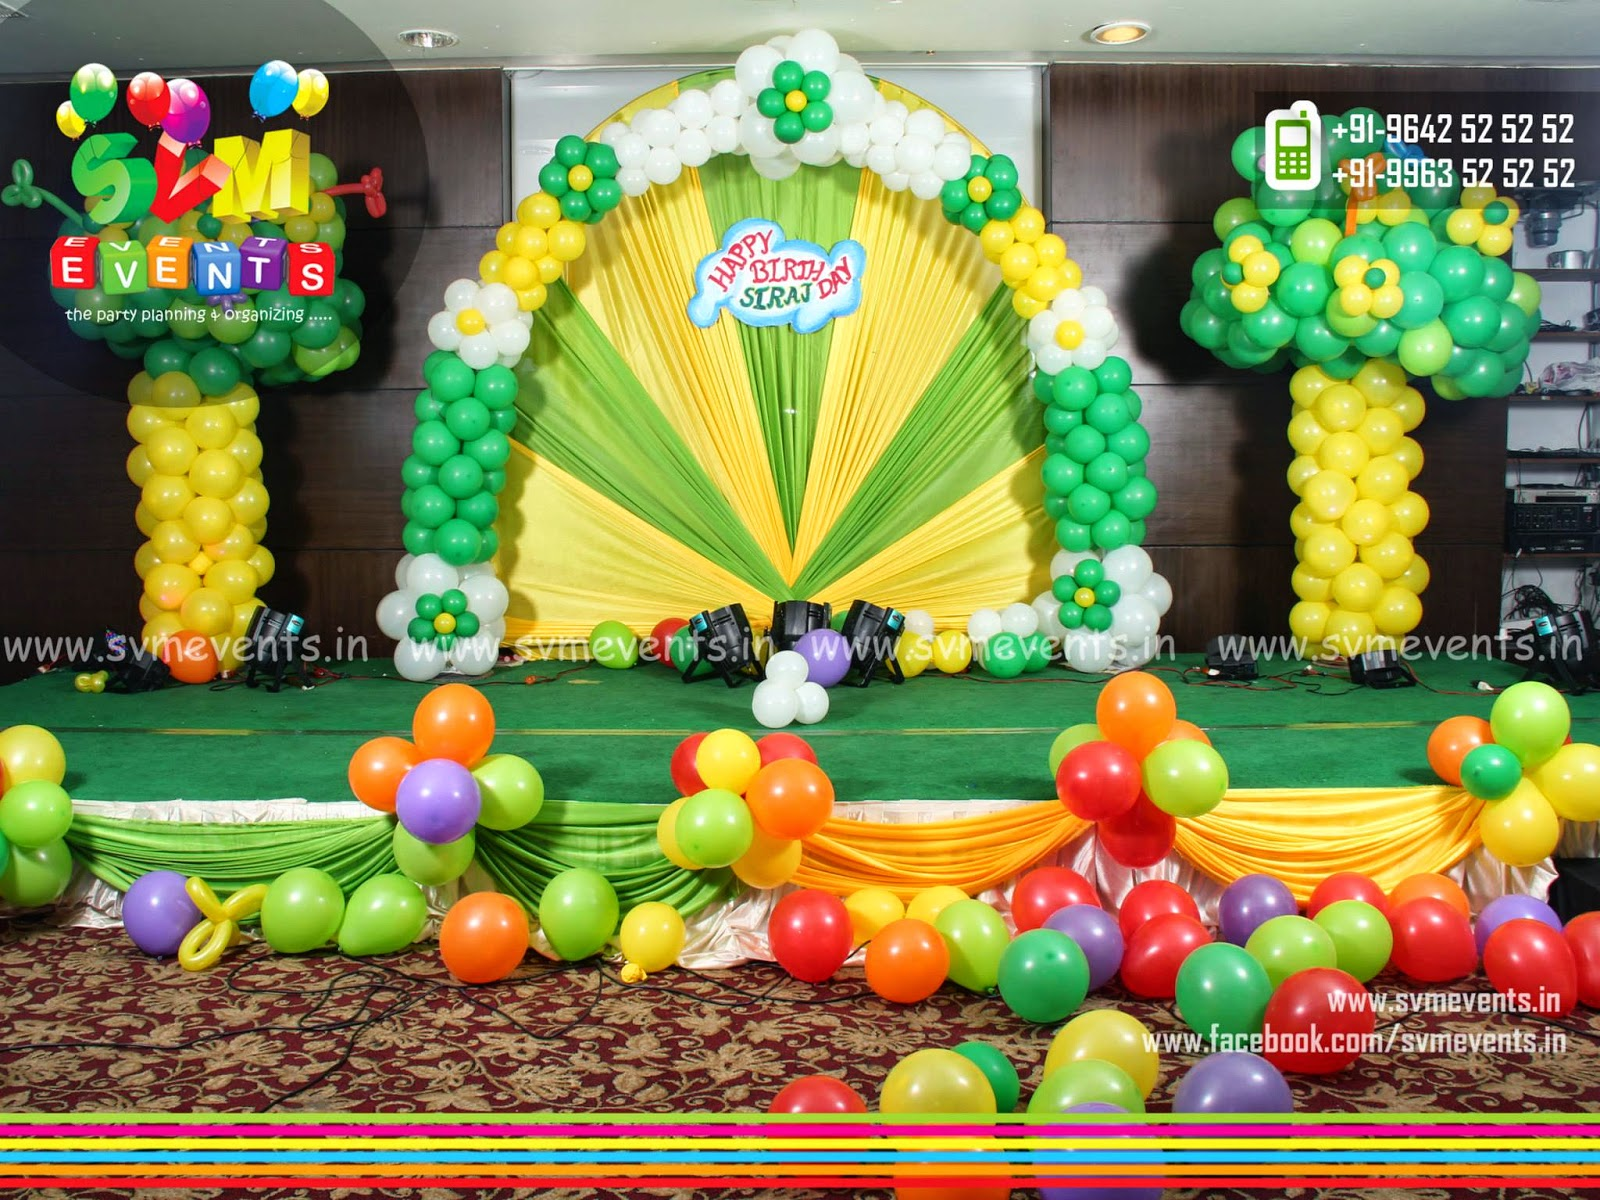 Svm Events 2D amd Semi3D Setup for kids 1st Birthday Party Balloon